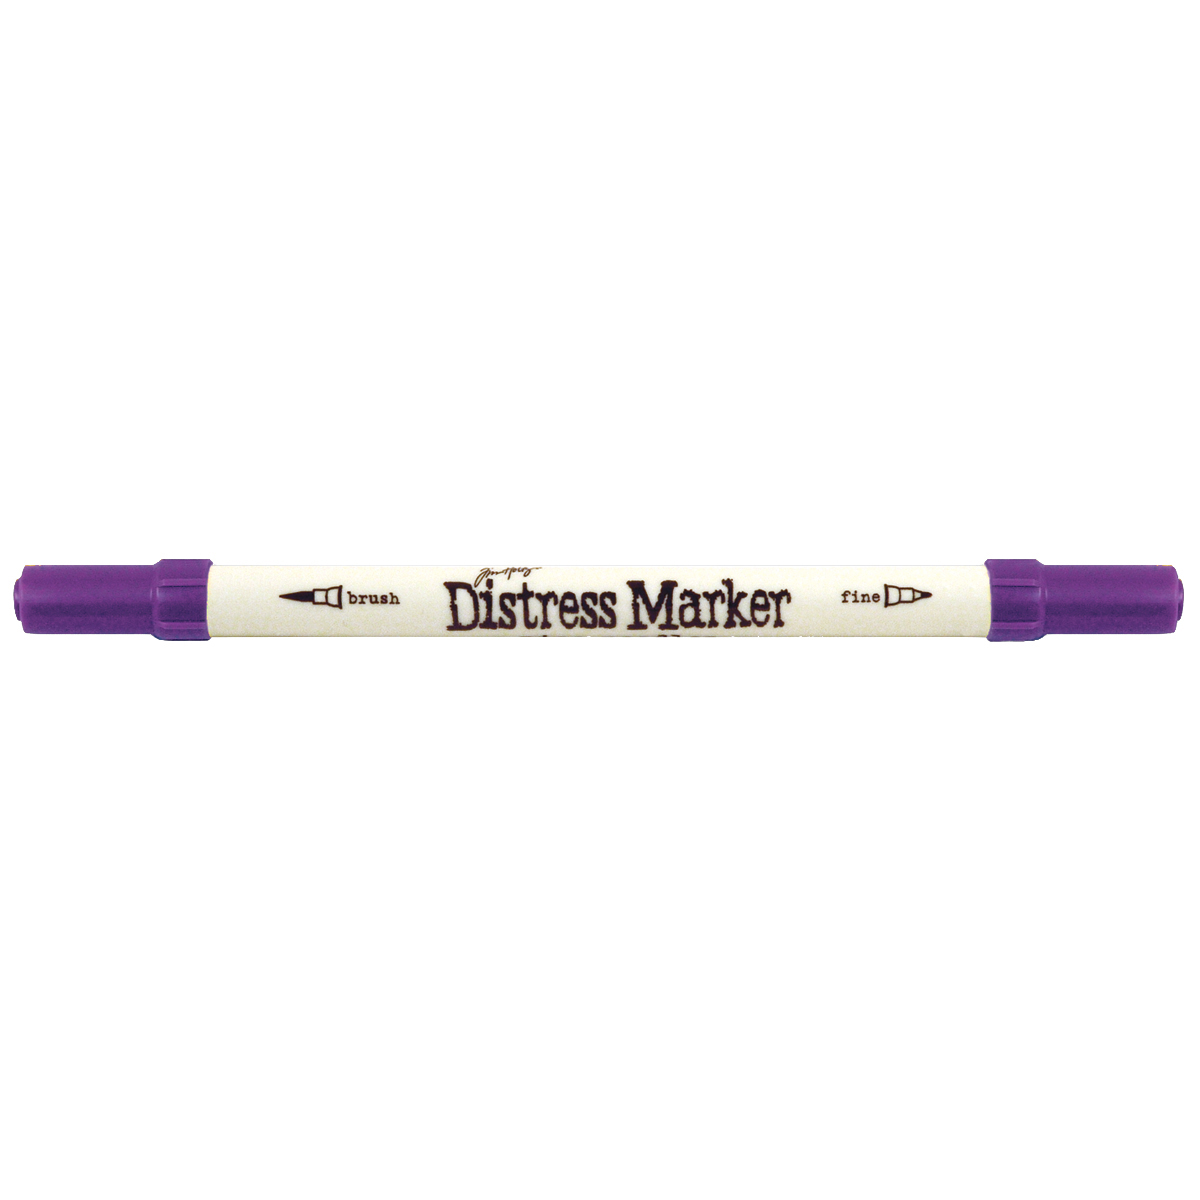 Distress marker wilted violet